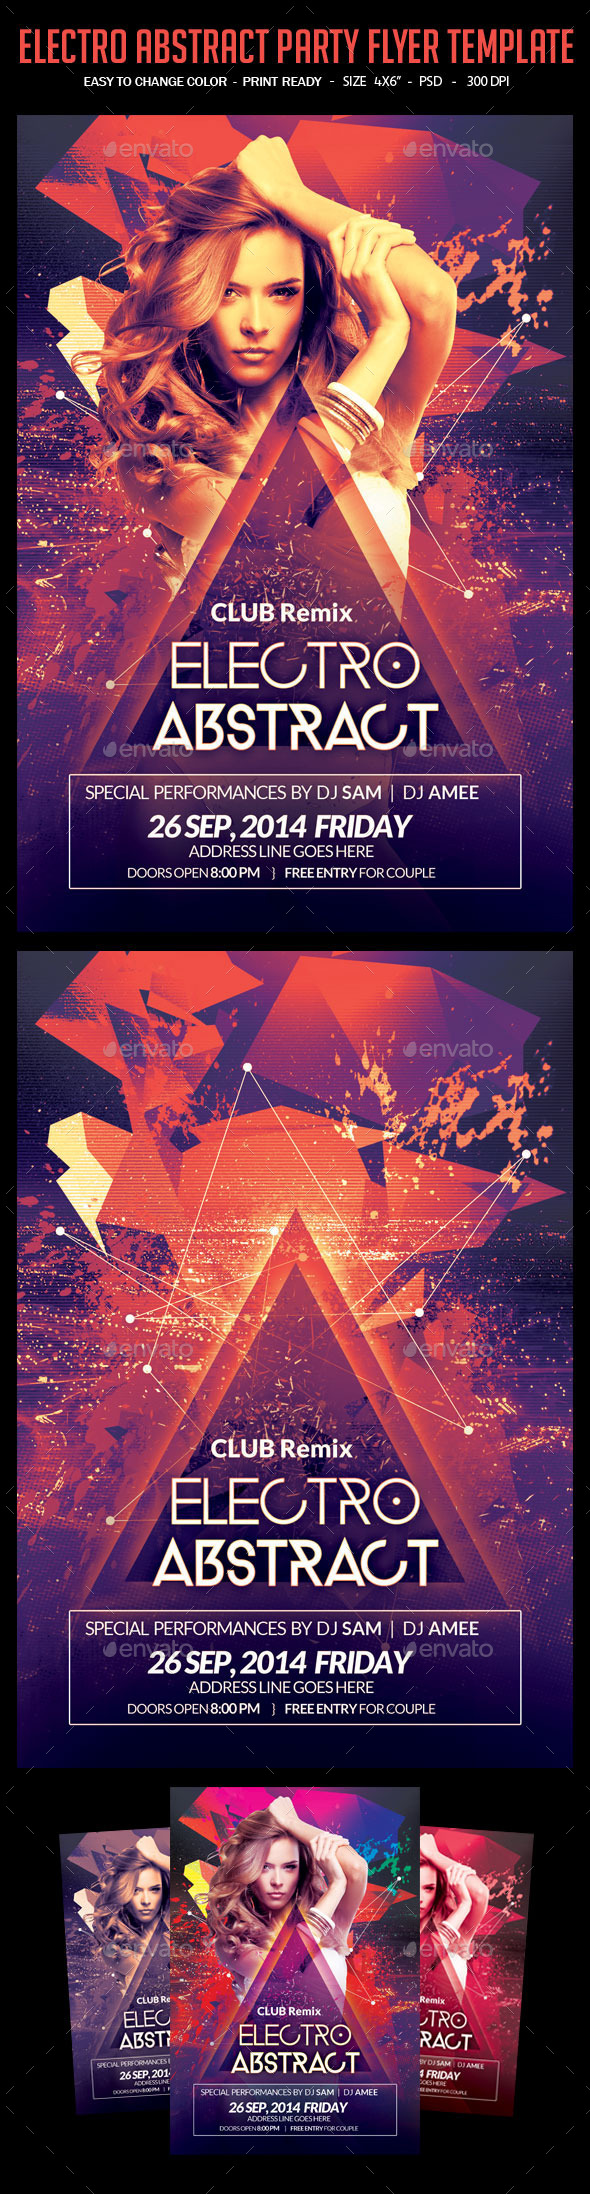 GraphicRiver Electro Abstract Vibes Party Flyer 10923596